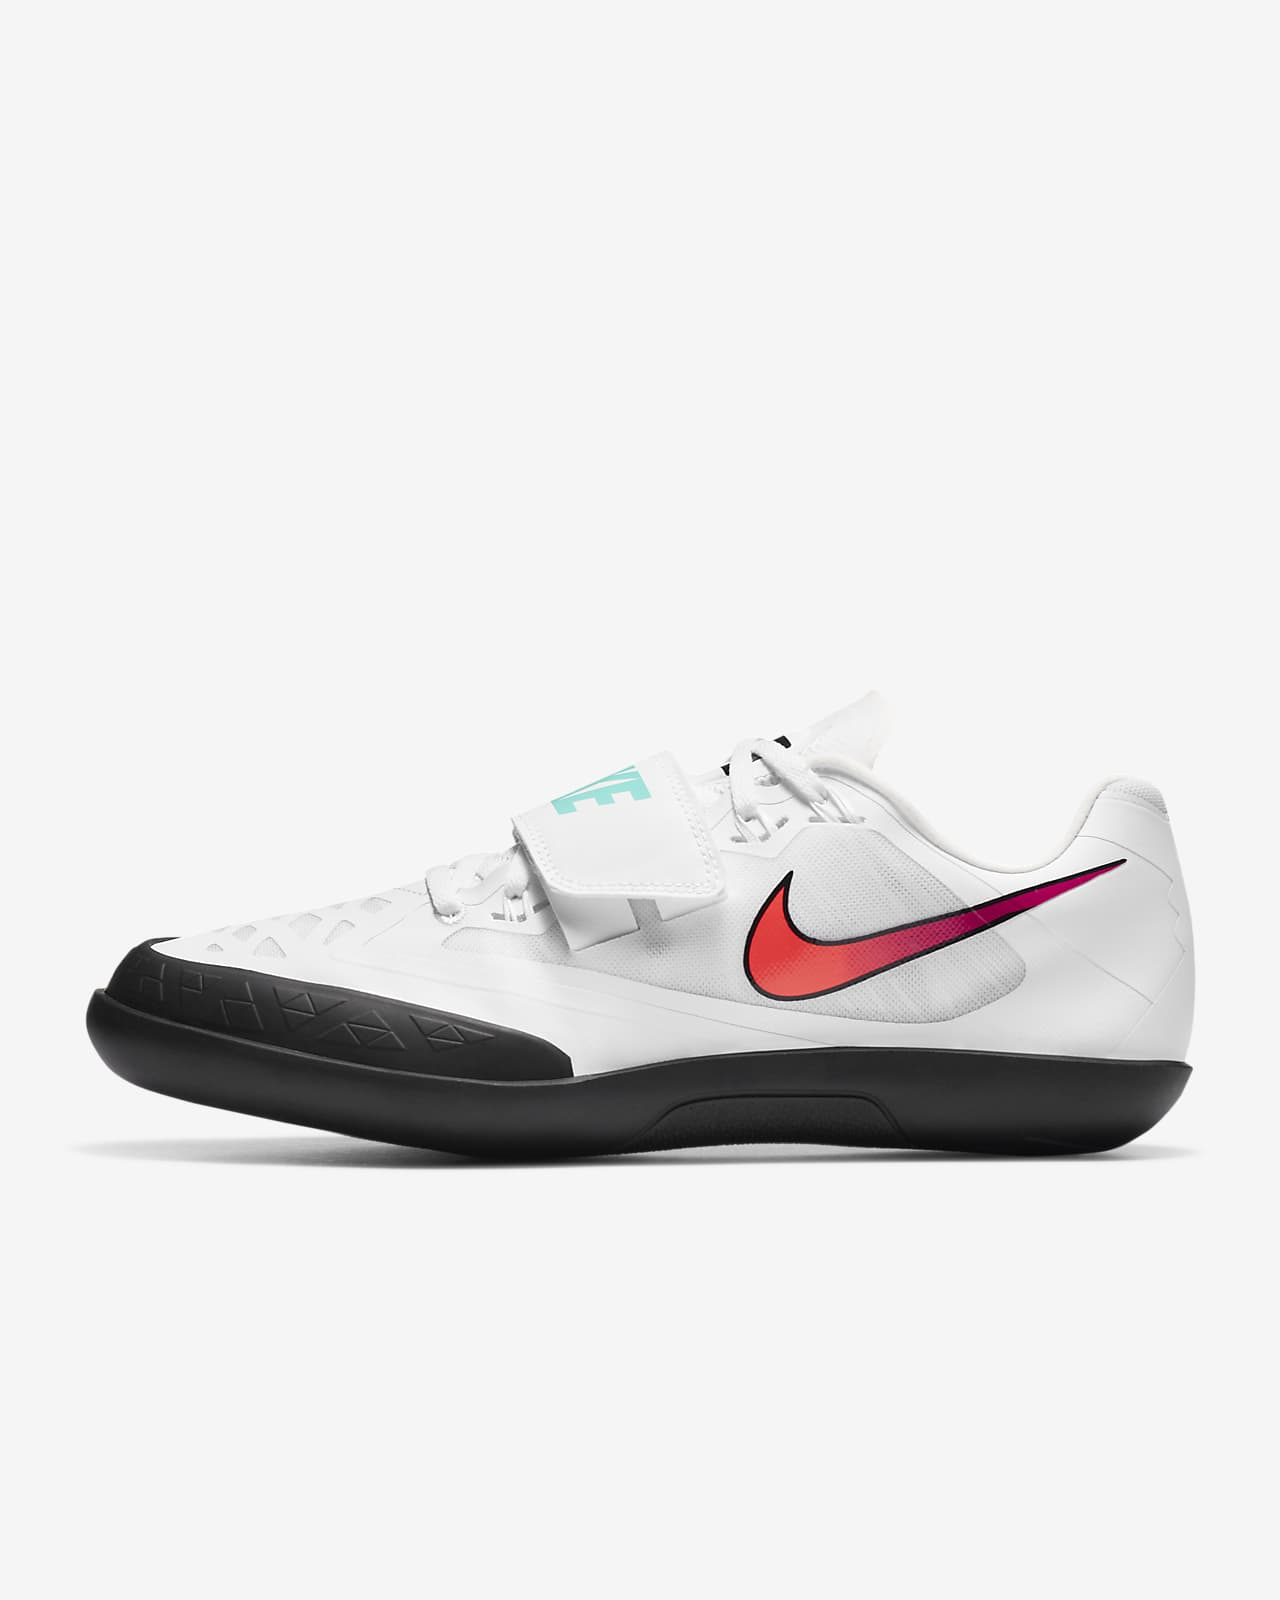 Nike Zoom SD 4 Unisex Throwing Shoe